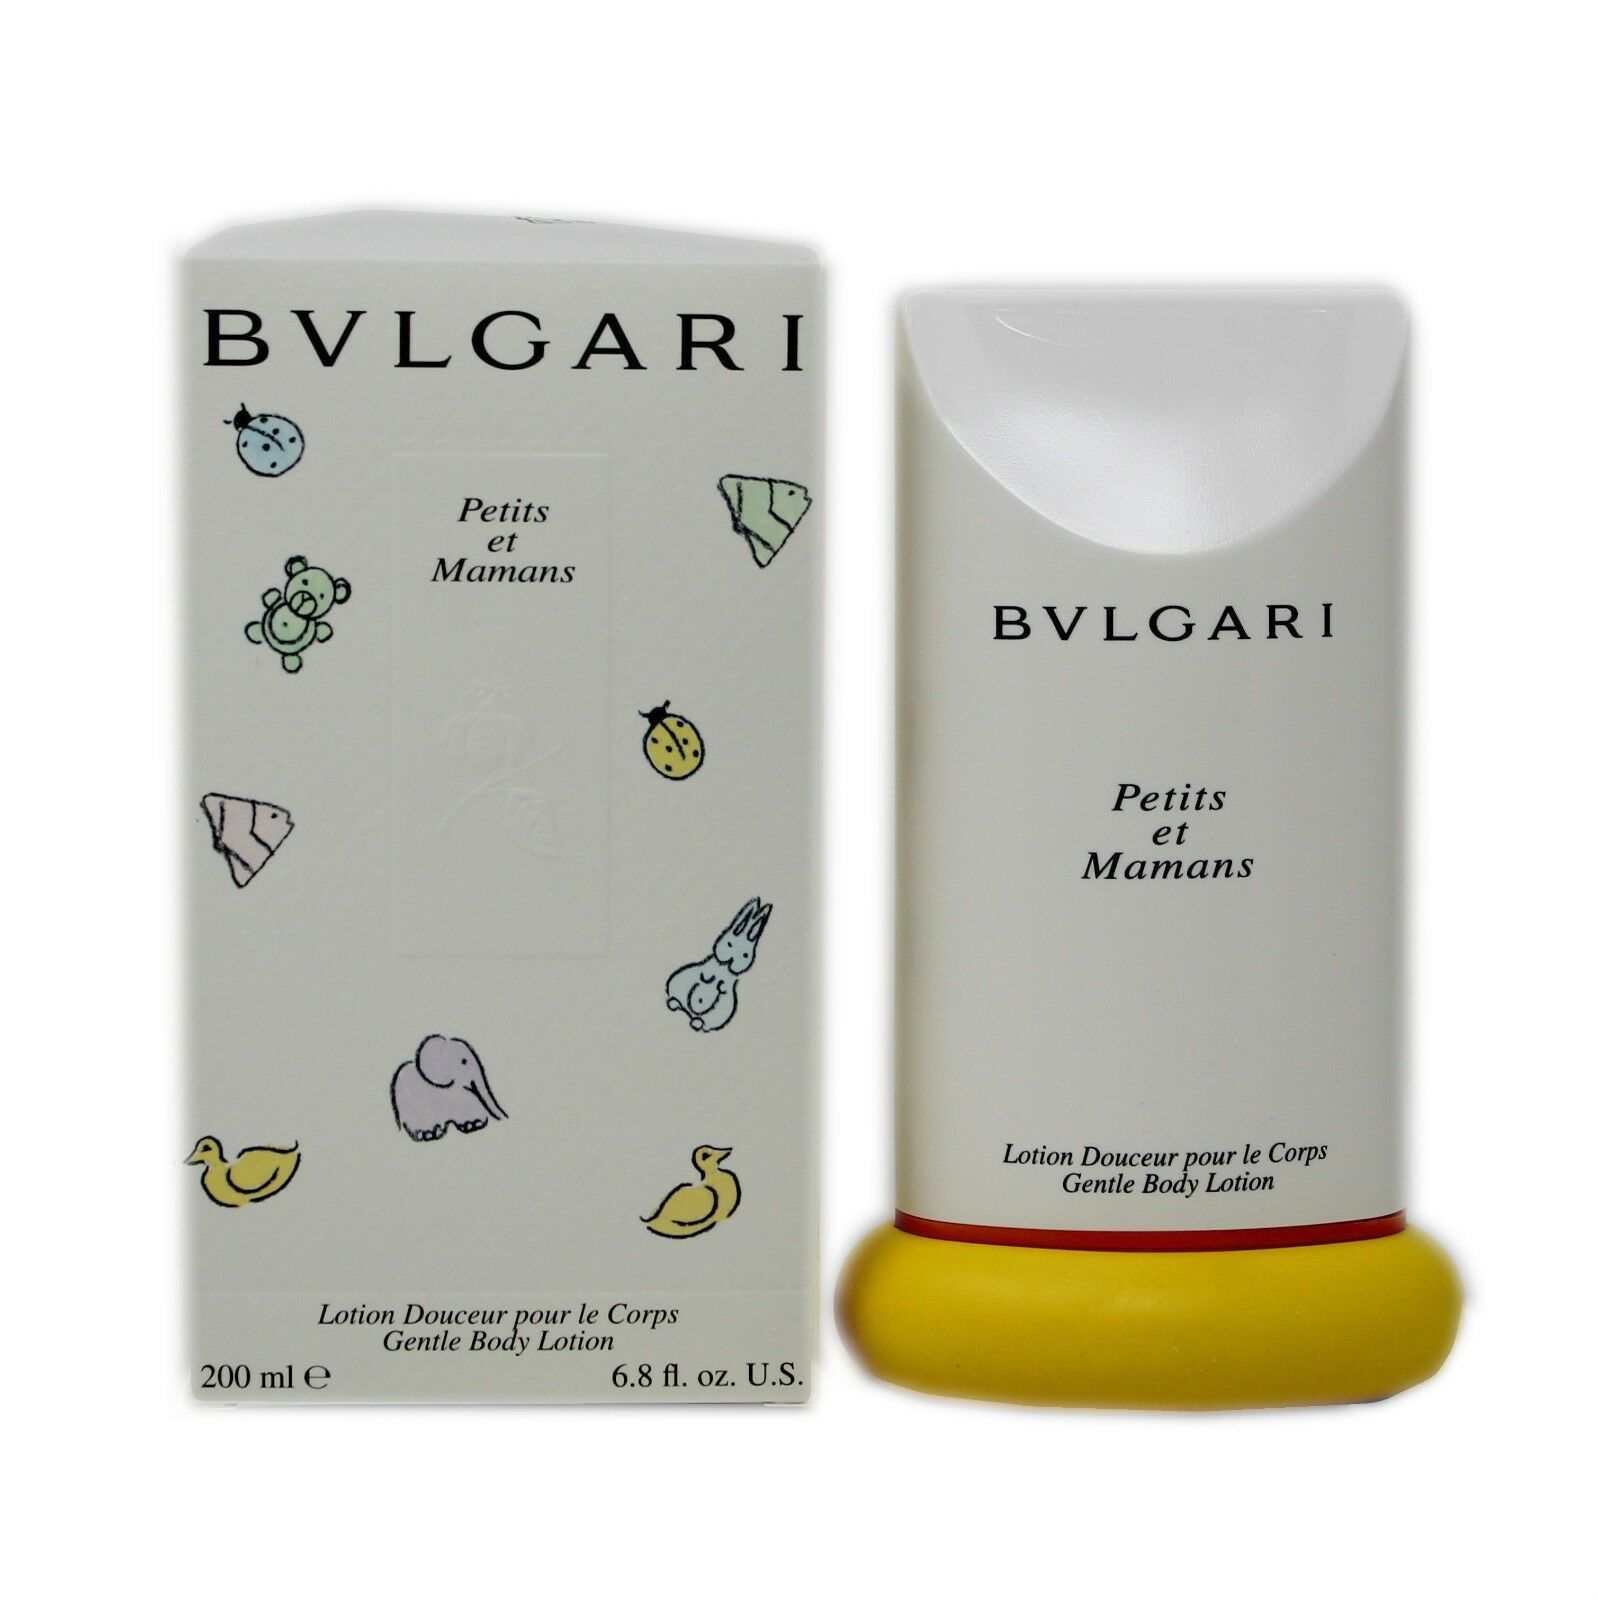 Primary image for BVLGARI PETITS ET MAMANS GENTLE BODY LOTION 200 ML/6.8 FL.OZ. NIB-BV10038282